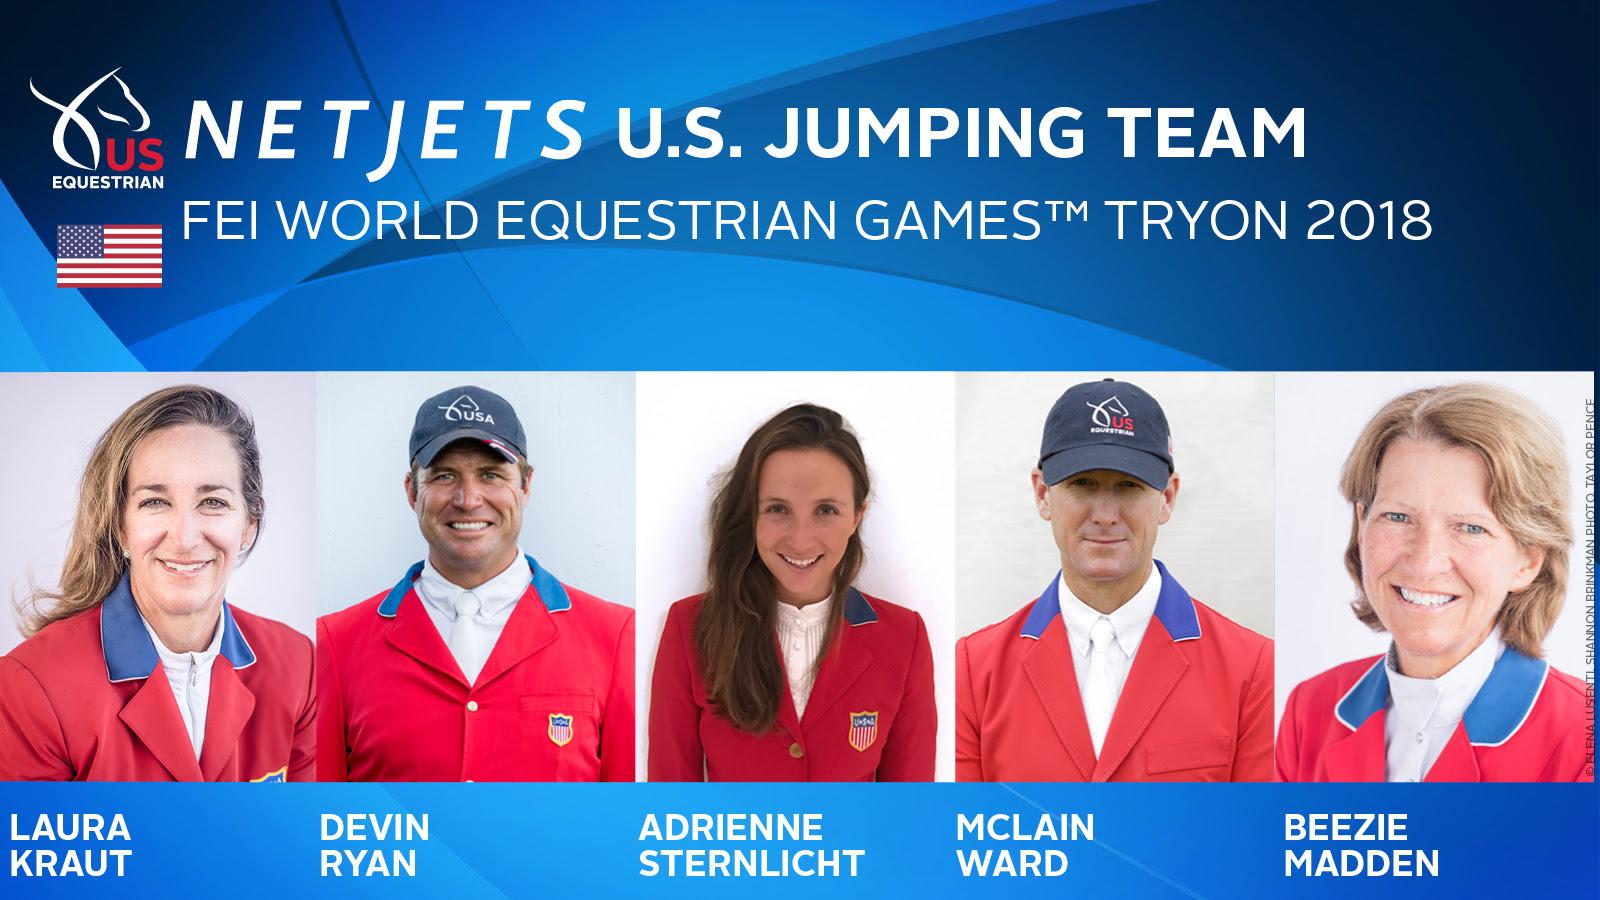 us_showjumping_team_for_the_fei_world_equestrian_games_tryon_2018.jpg